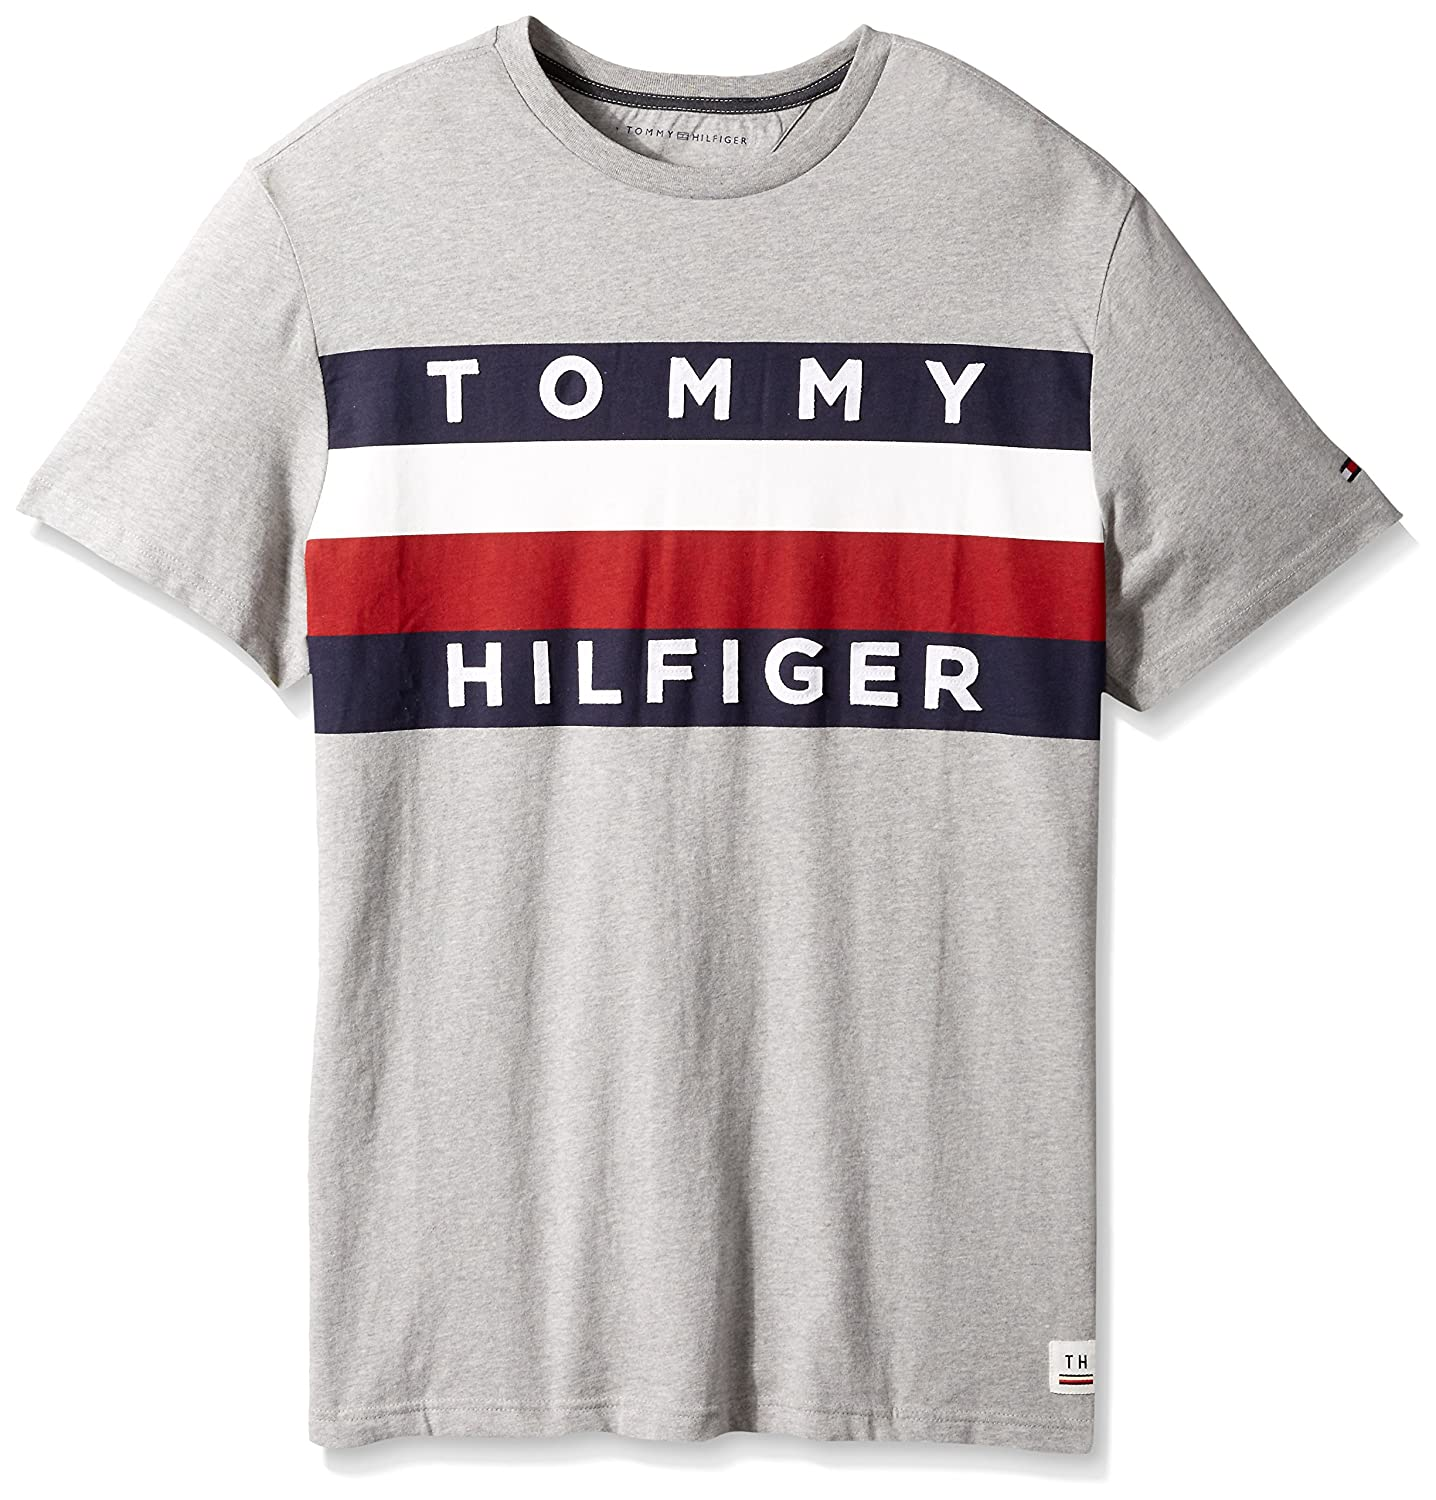 big sale 07f10 4b276 Tommy Hilfiger big and tall logo t shirt featuring our iconic flag logo and  stripes. Jersey fabric garment washed for softness. Ribbing at collar